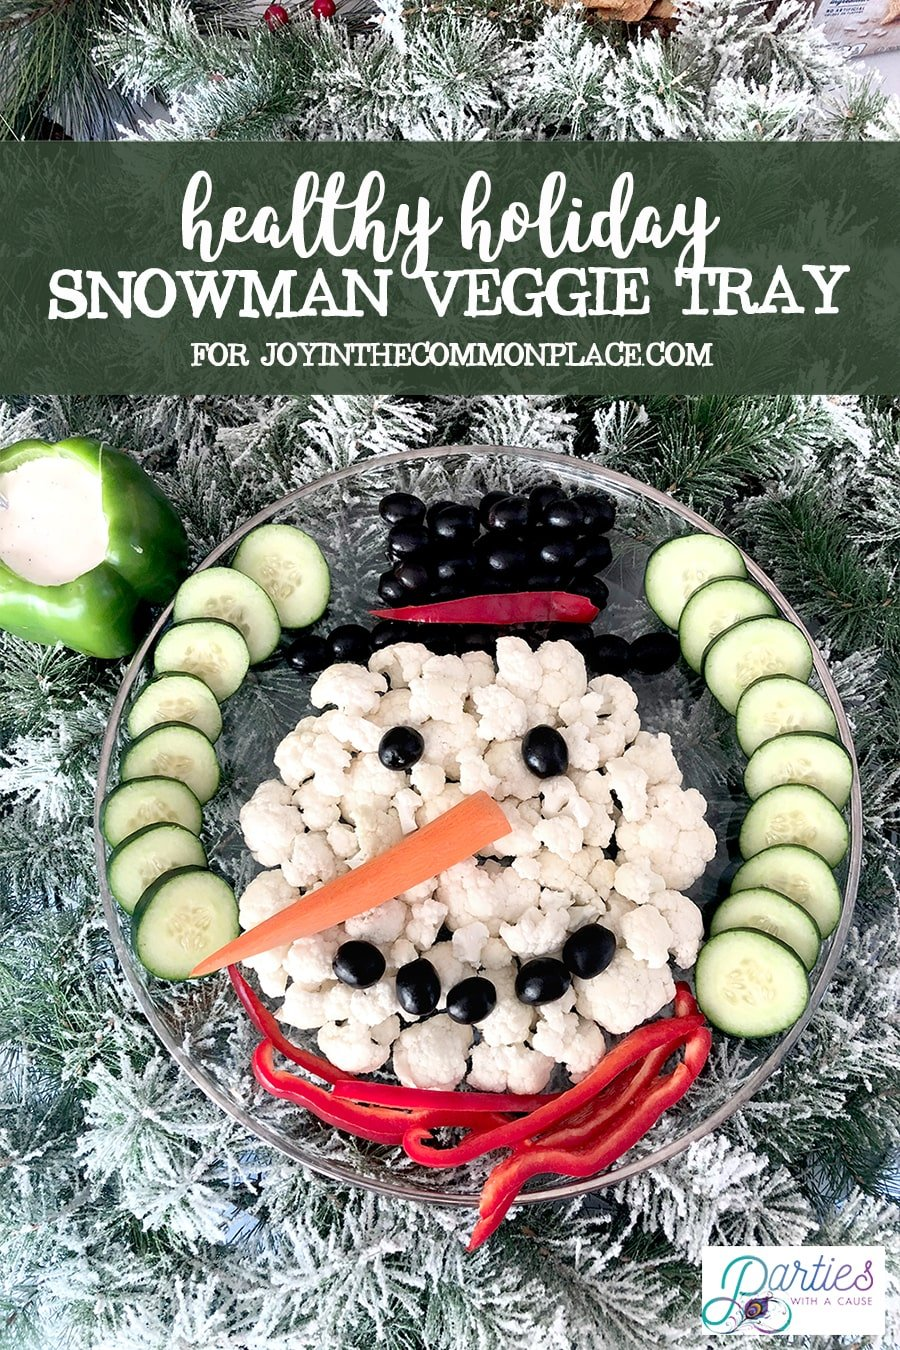 Snowman Veggie Tray by Parties With A Cause